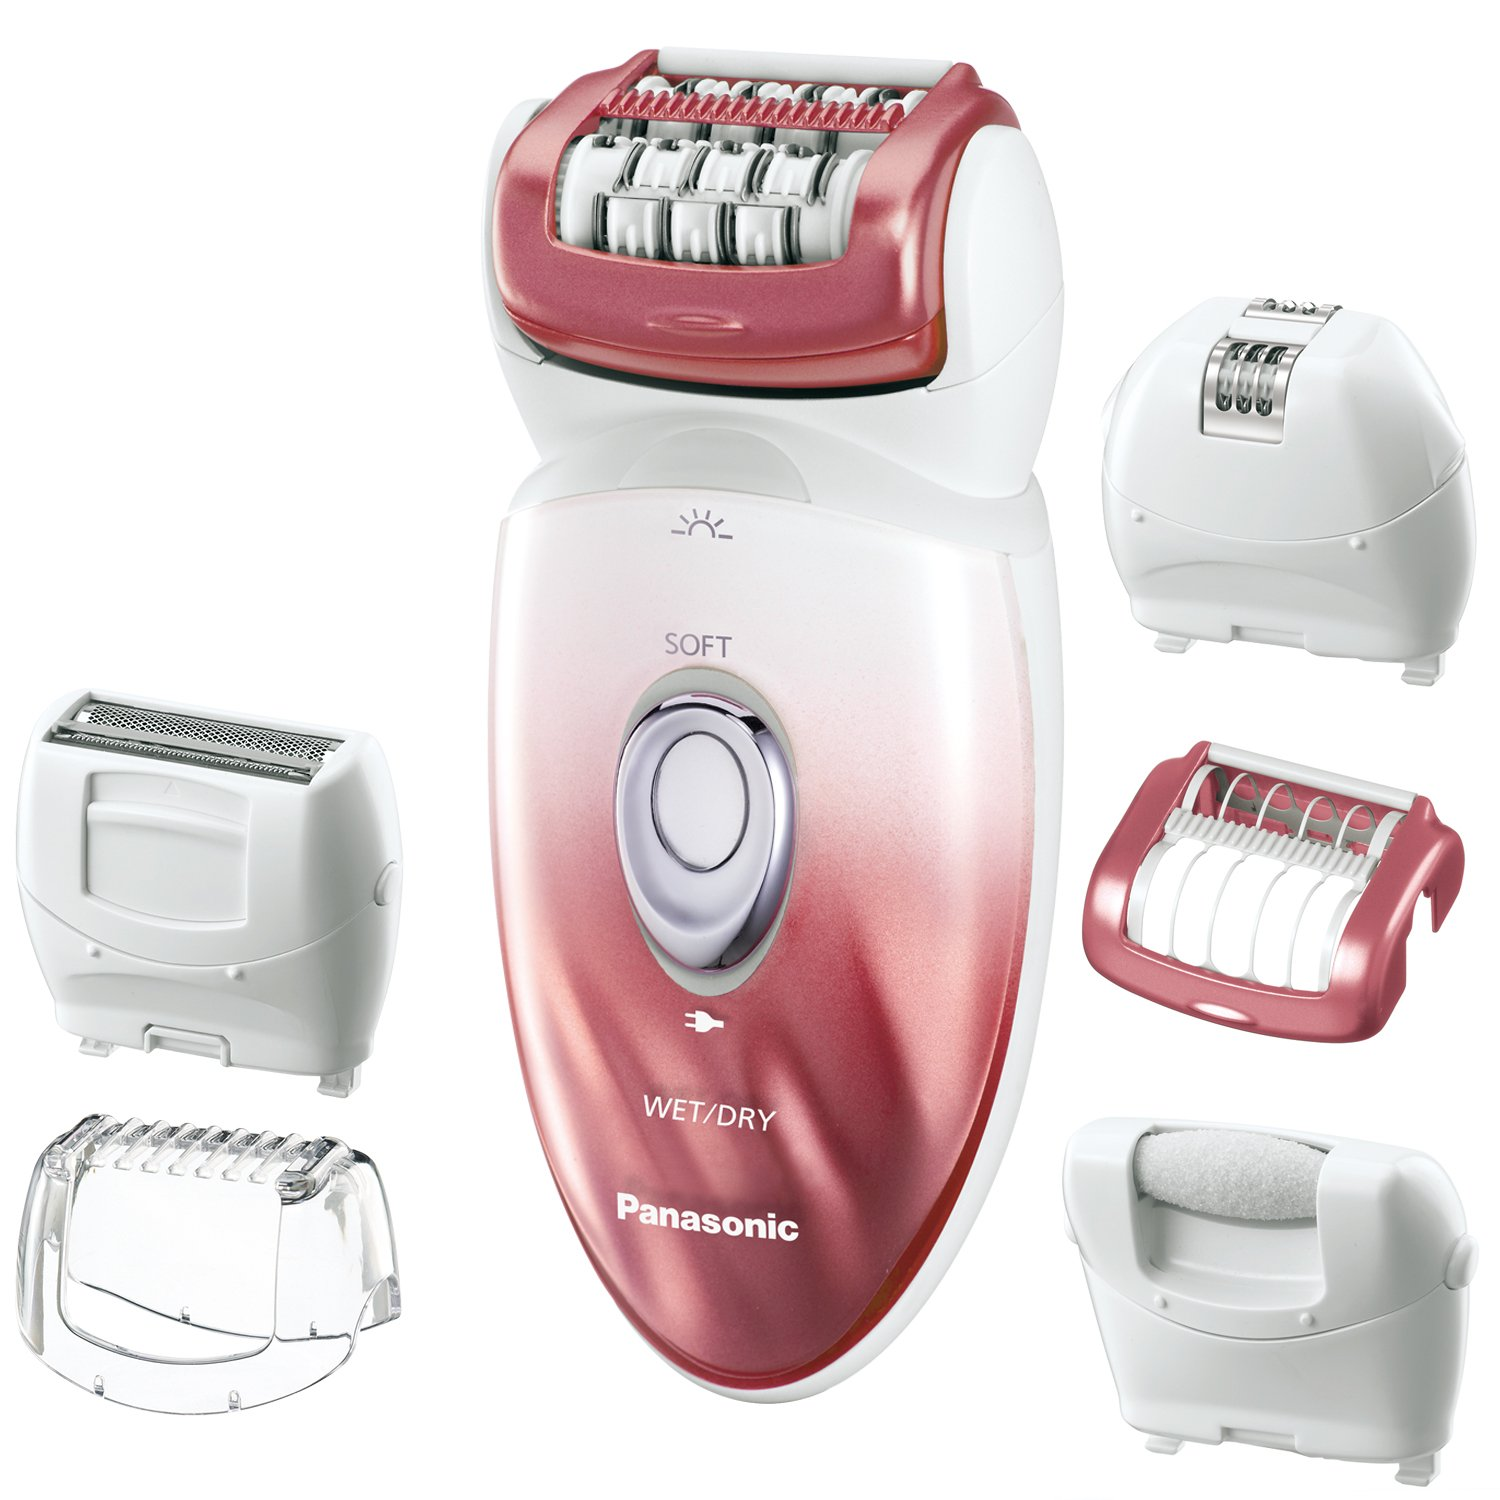 Panasonic ES-ED90-P Wet Dry Epilator and Shaver, with Six Attachments including Pedicure Buffer for Foot Care